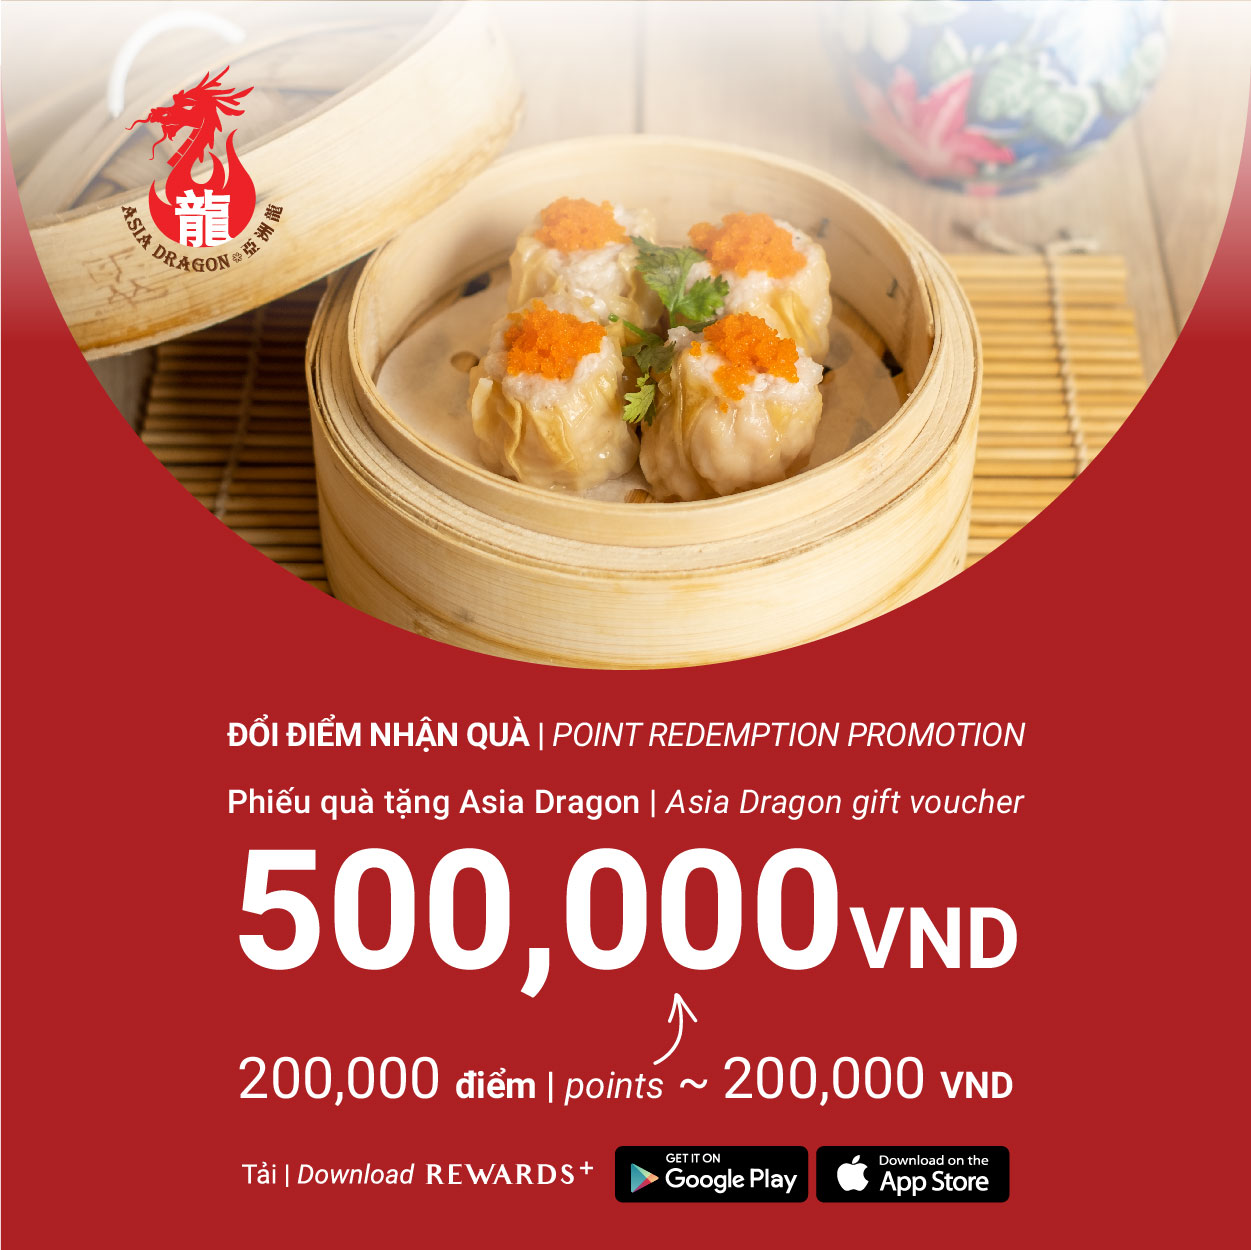 🎉IT'S DIM SUM TIME WITH GIFT VOUCHER VALUED VND500,000 FROM ASIA DRAGON - ESTELLA PLACE🎉